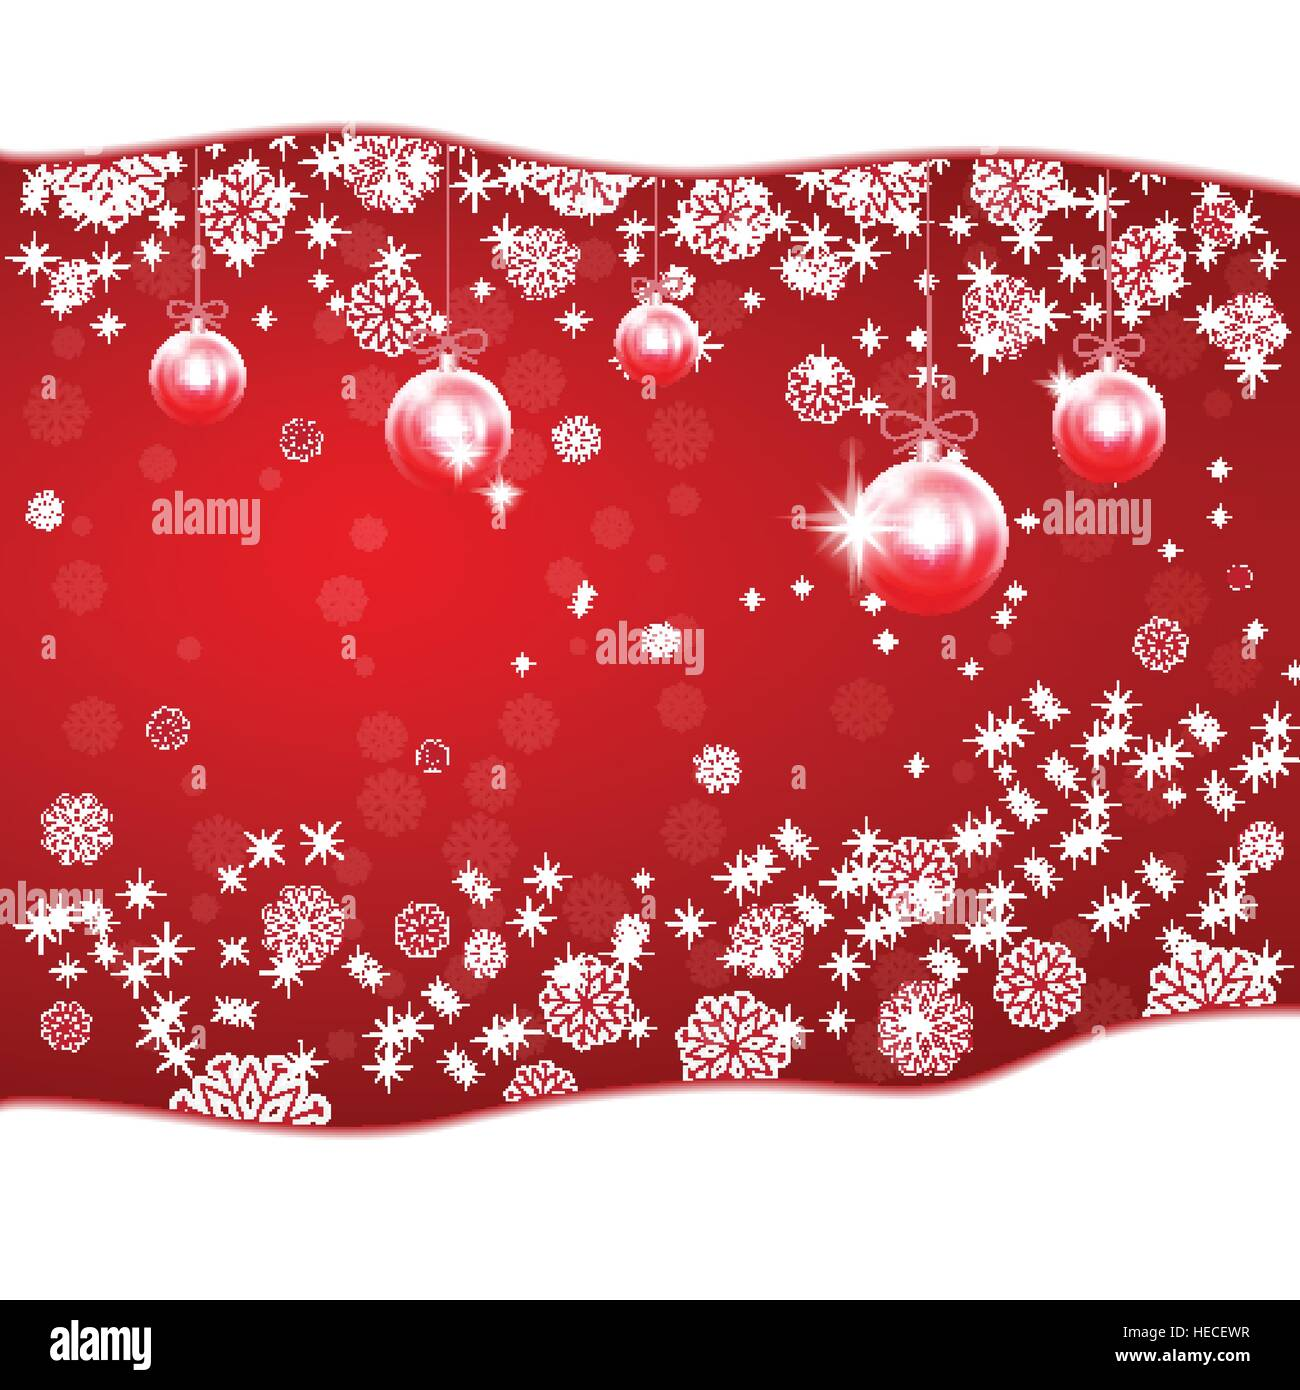 Red Christmas balls on New Year's background with stars and snowflakes. - Stock Image